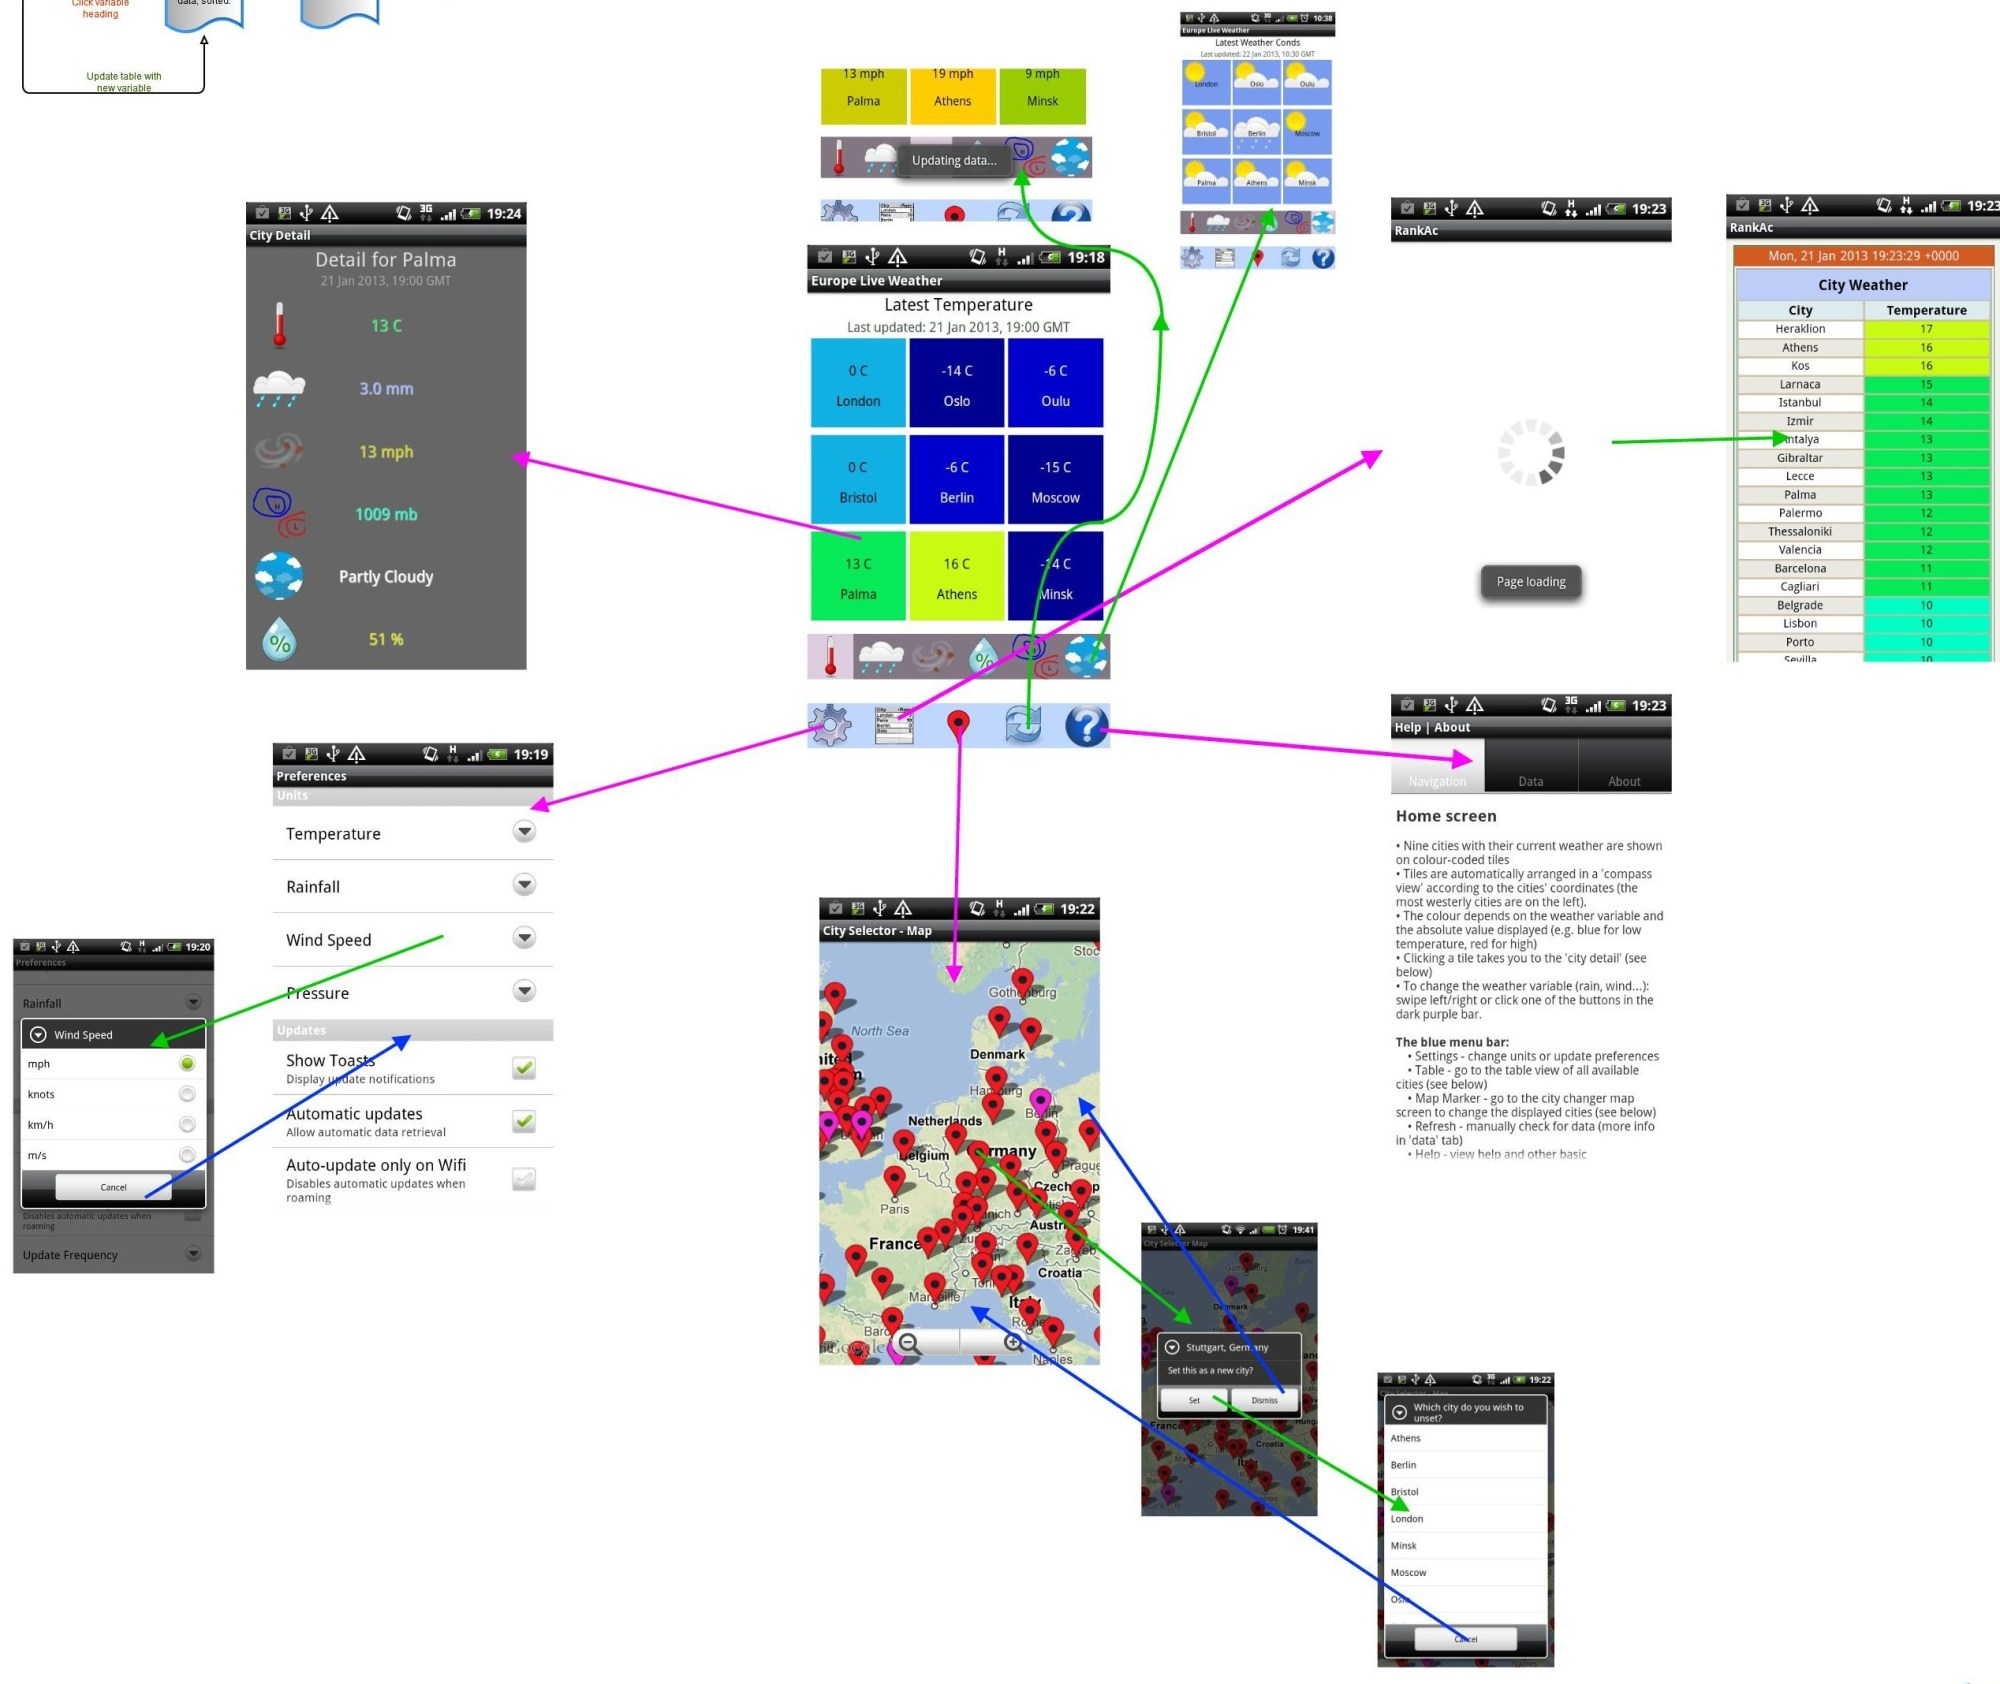 hight resolution of city weather compare app flow diagram2